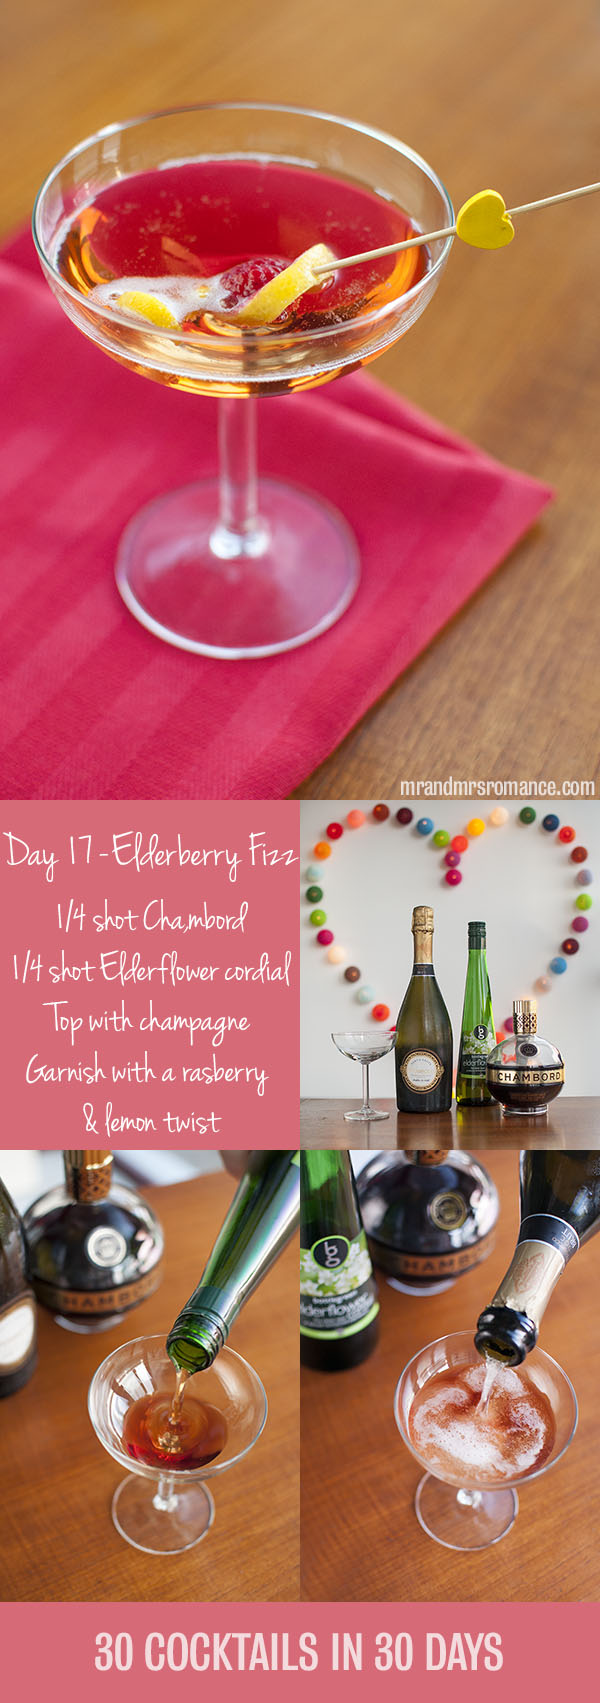 Mr and Mrs Romance - Day 17 - Elderberry Fizz Champagne Cocktail Recipe